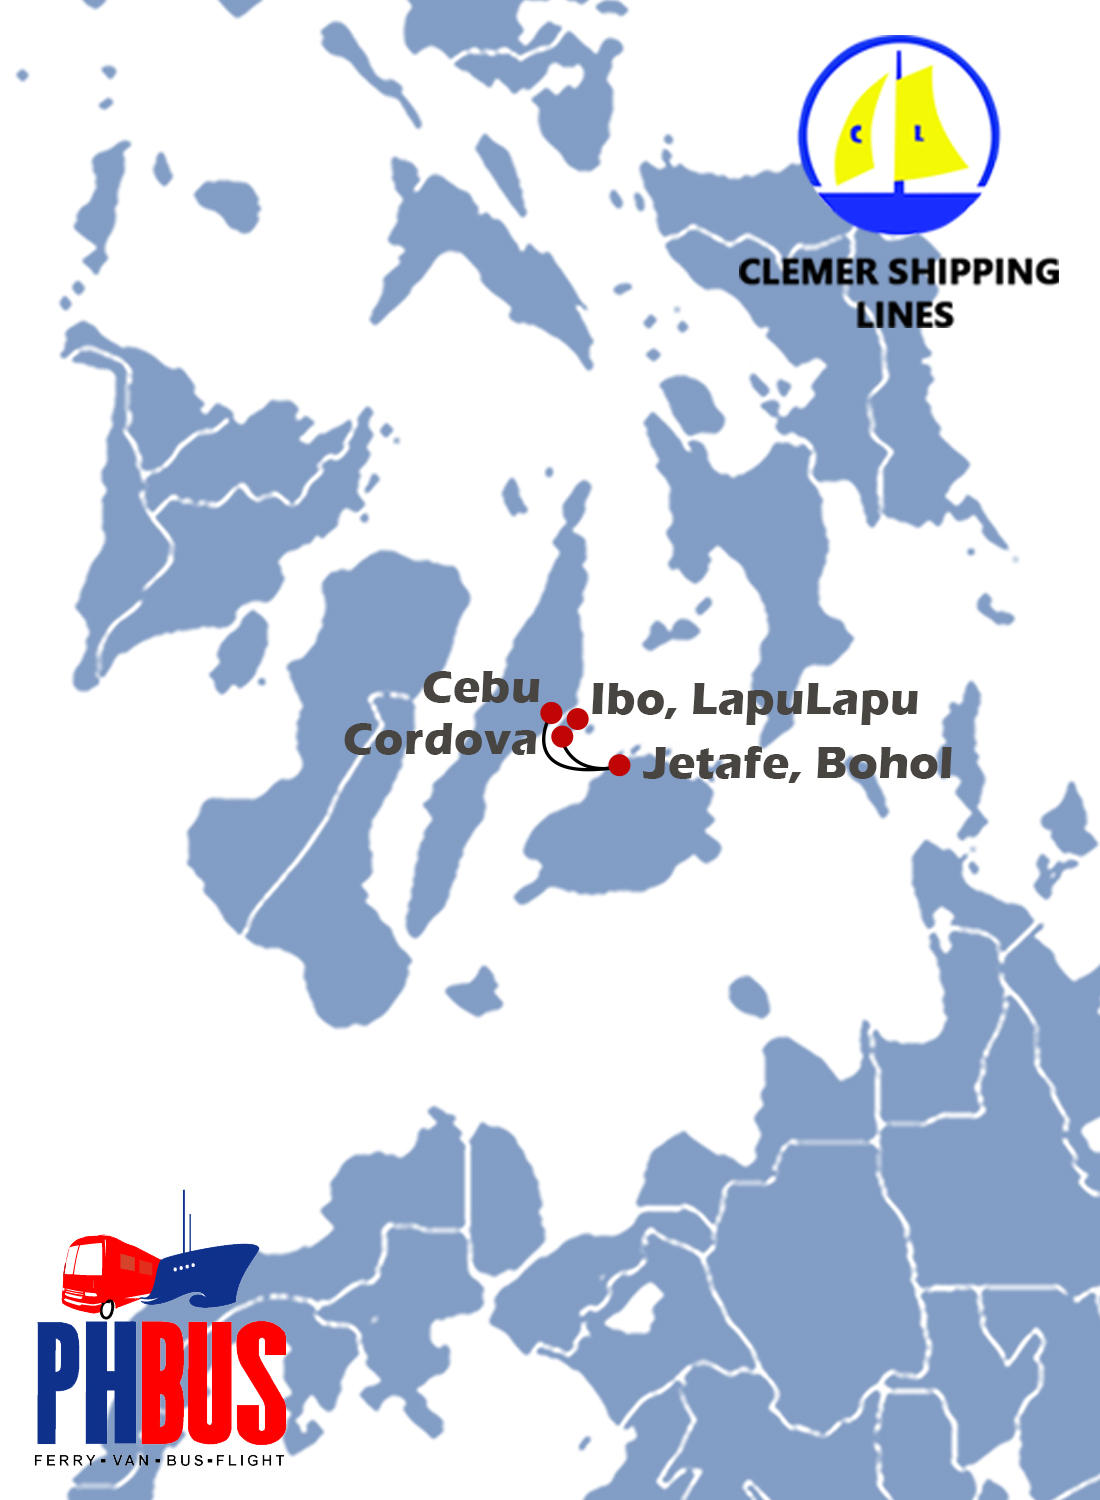 clemer-shipping-lines-ferryroute-map-phbus.jpg